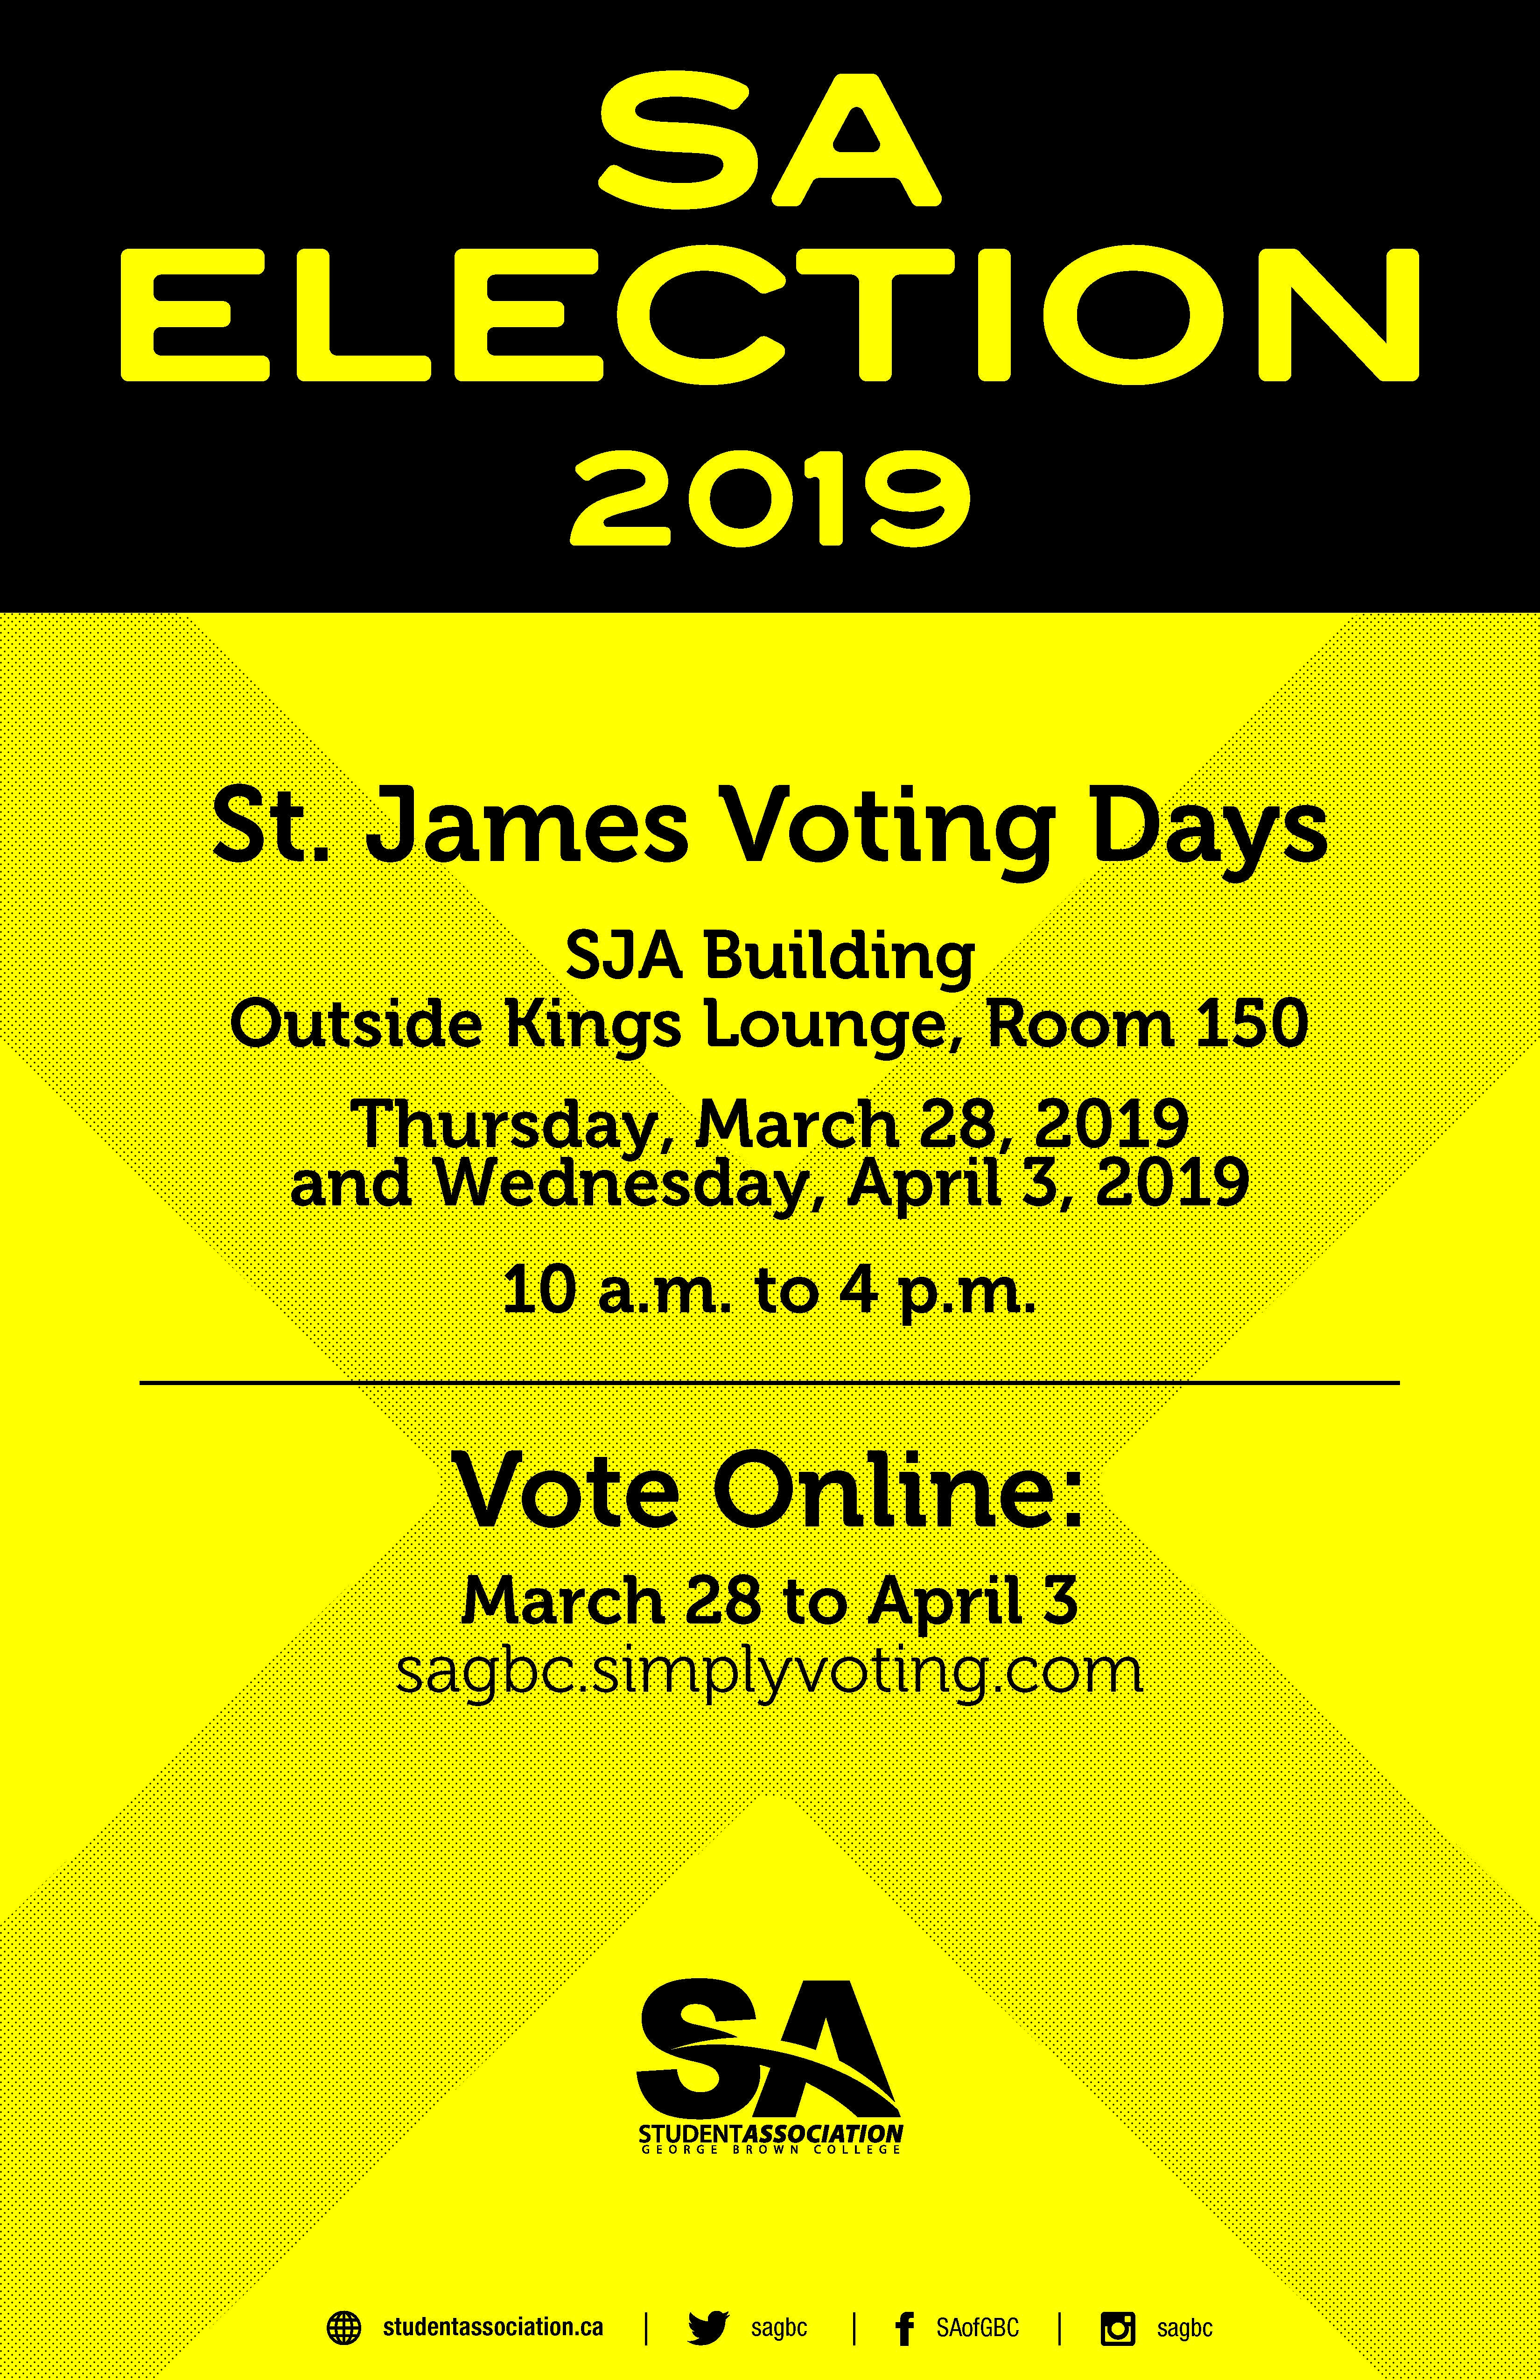 SA Election 2019 St. James Voting Days. SJA Building, Outside Kings Lounge, room 150. Thursday, March 28 and Wednesday April 3. 10 a.m. to 4 p.m. Vote Online: March 28 to April 3 sagbc.simplyvoting.com